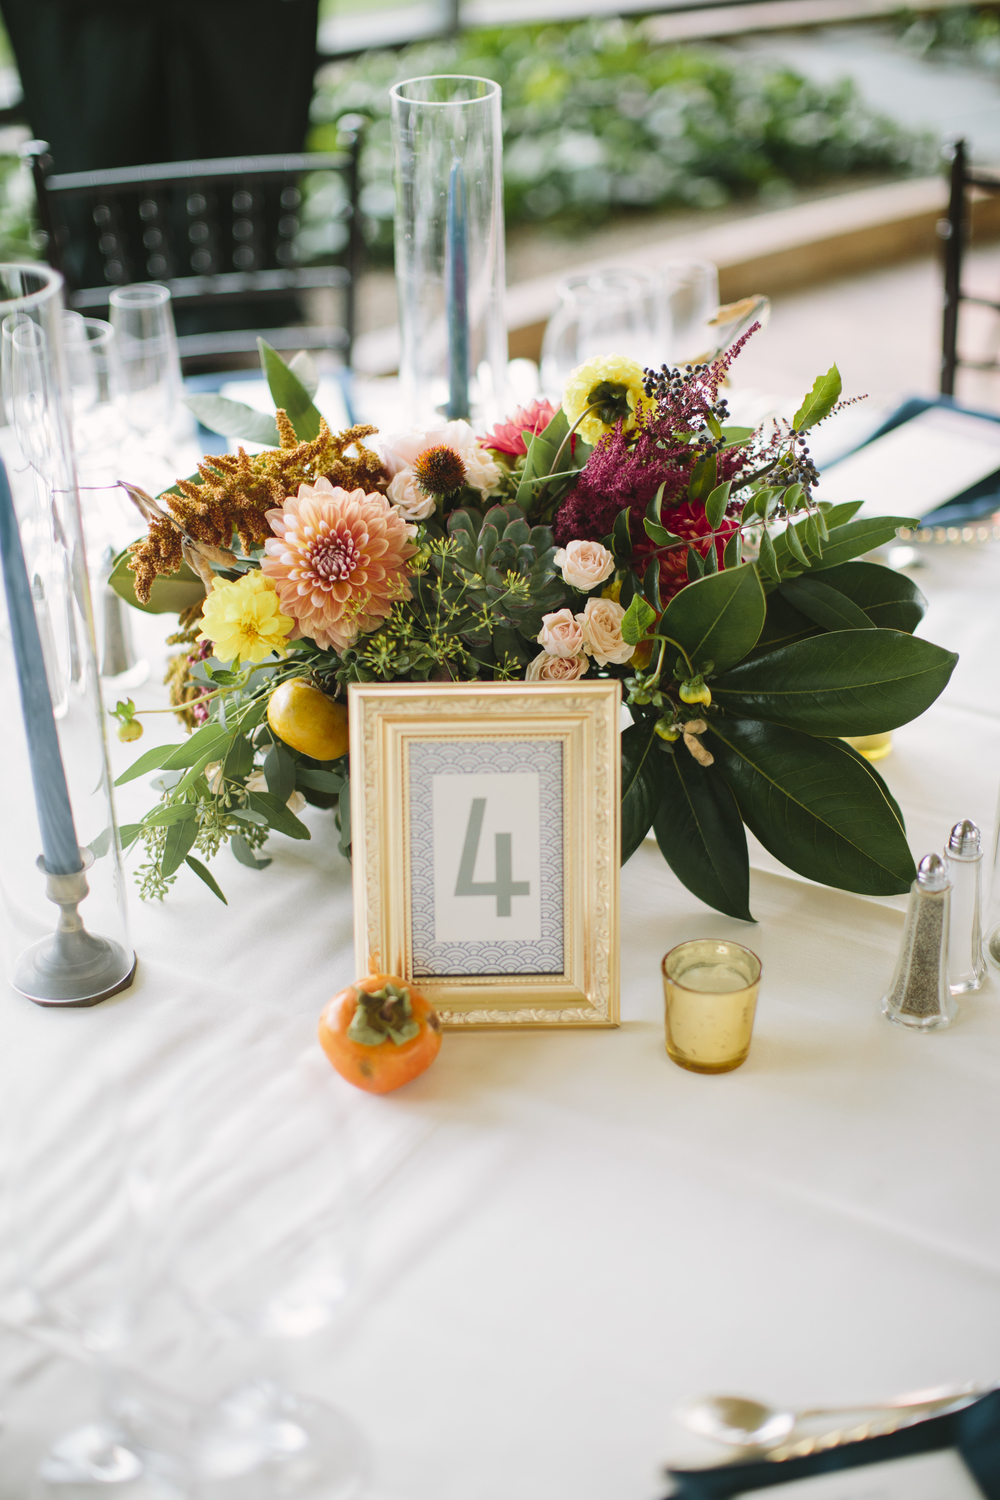 A Garden Party Florist, Jasna Polana, Saltwater Studios Photography, Wild, Table Decor, Persimmons